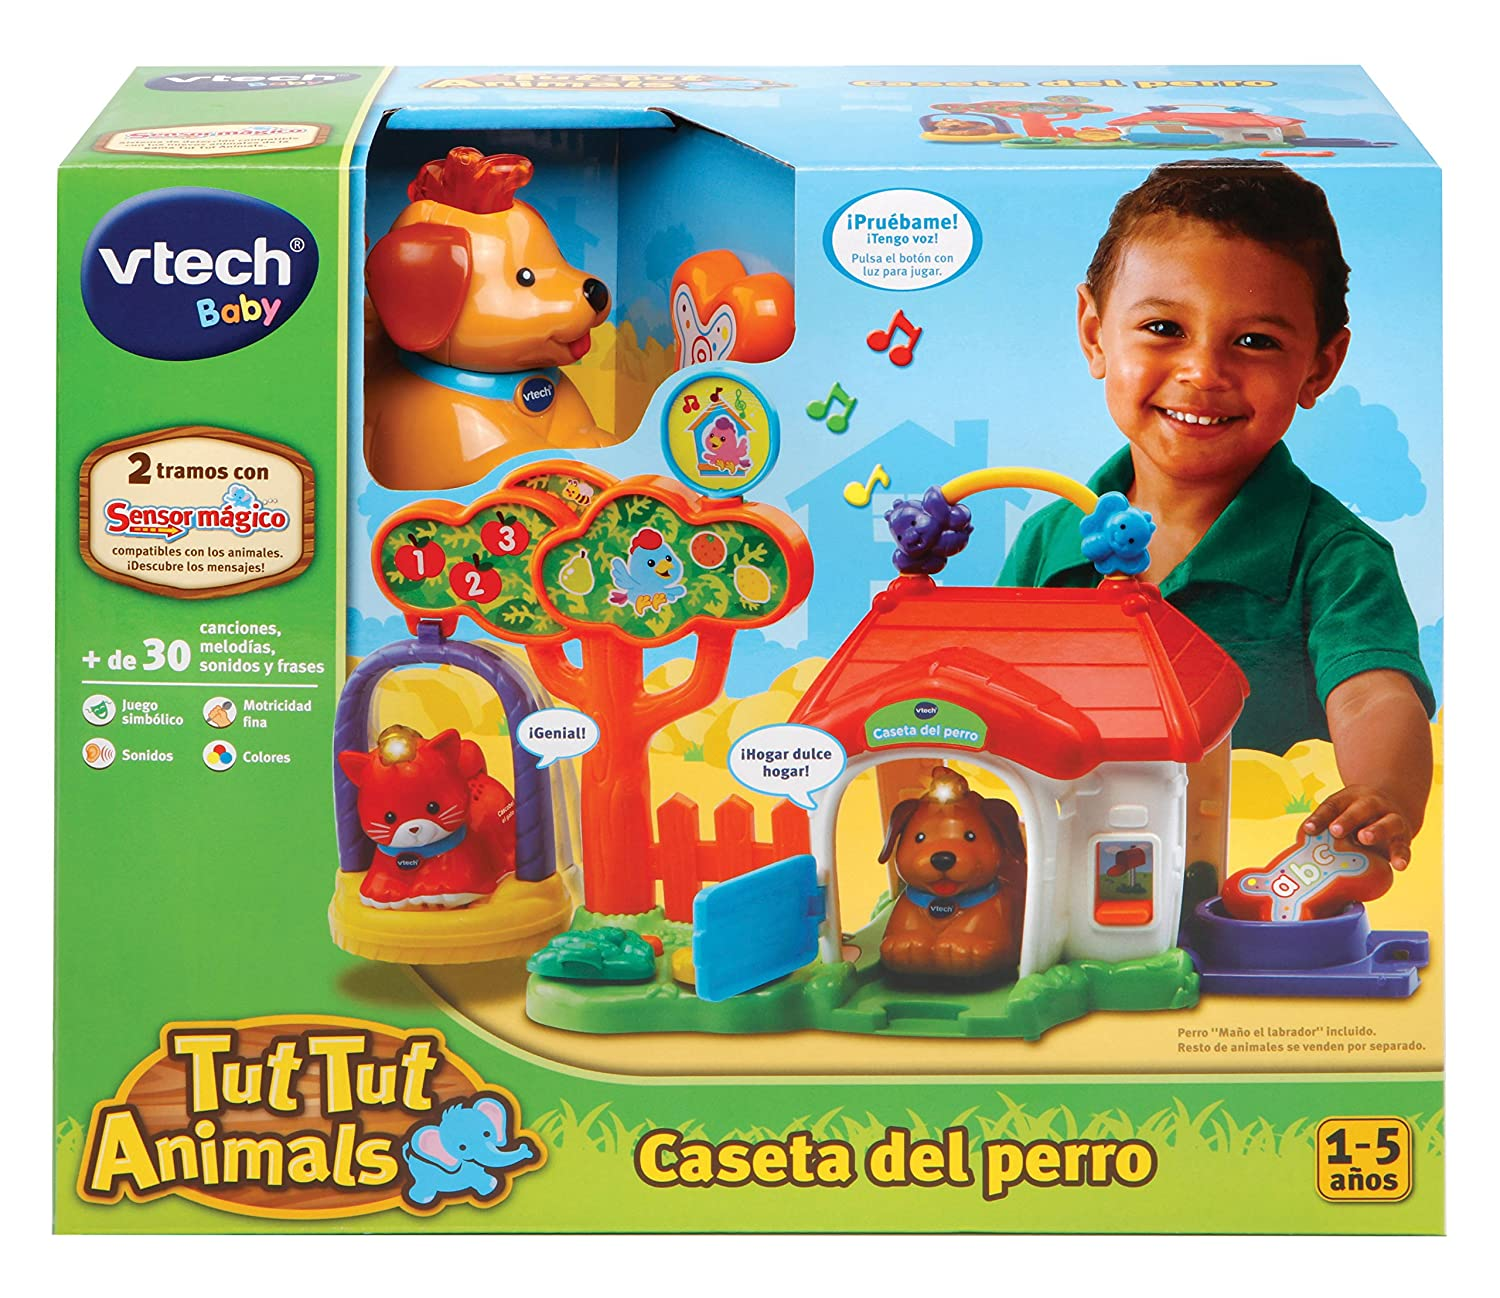 VTech-80-189222 Play Set tut Animals, Color (3480-189222: Amazon.es: Juguetes y juegos